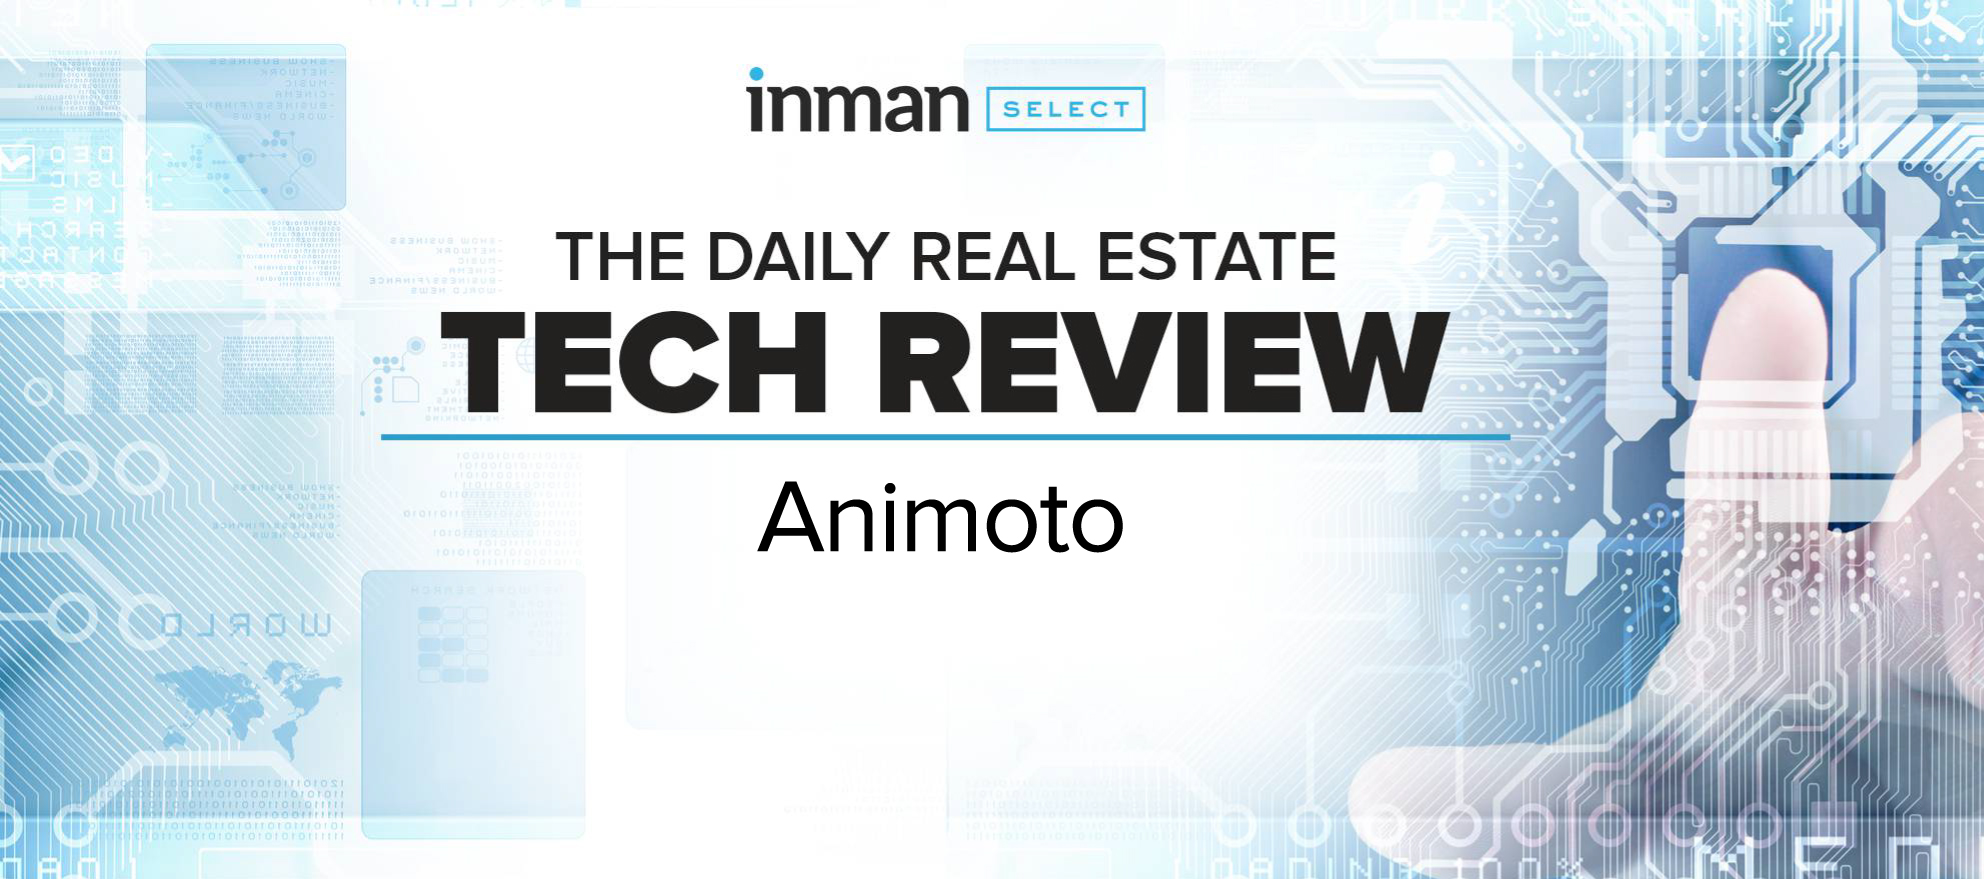 Animoto makes listing videos and slideshows simple and effective